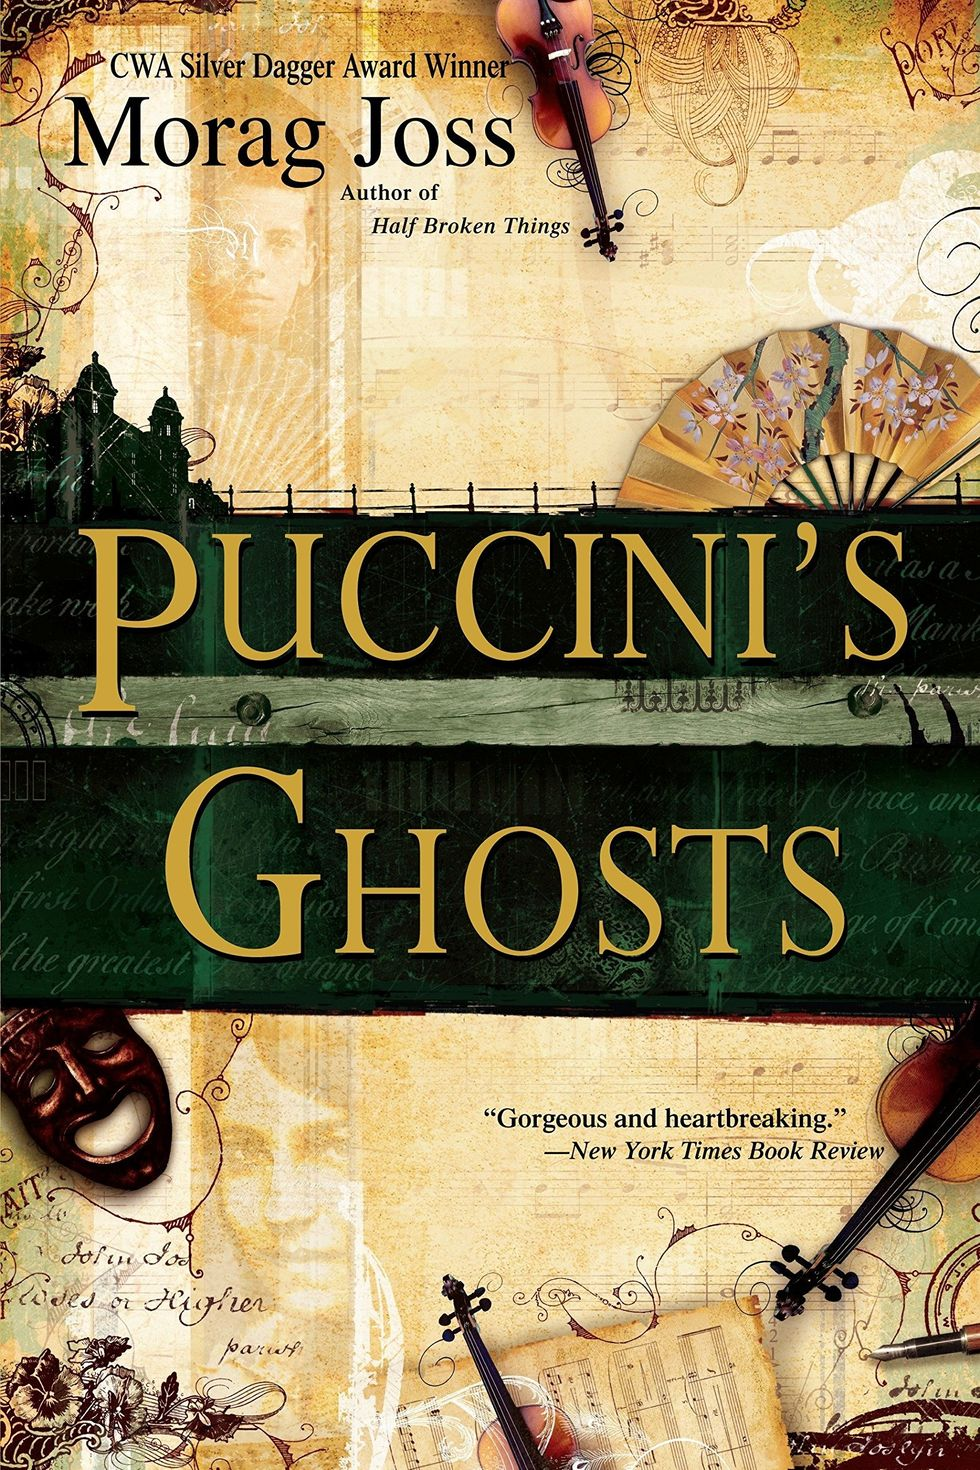 Monachopsis And Solipsism: Analyzing Puccini's Ghosts